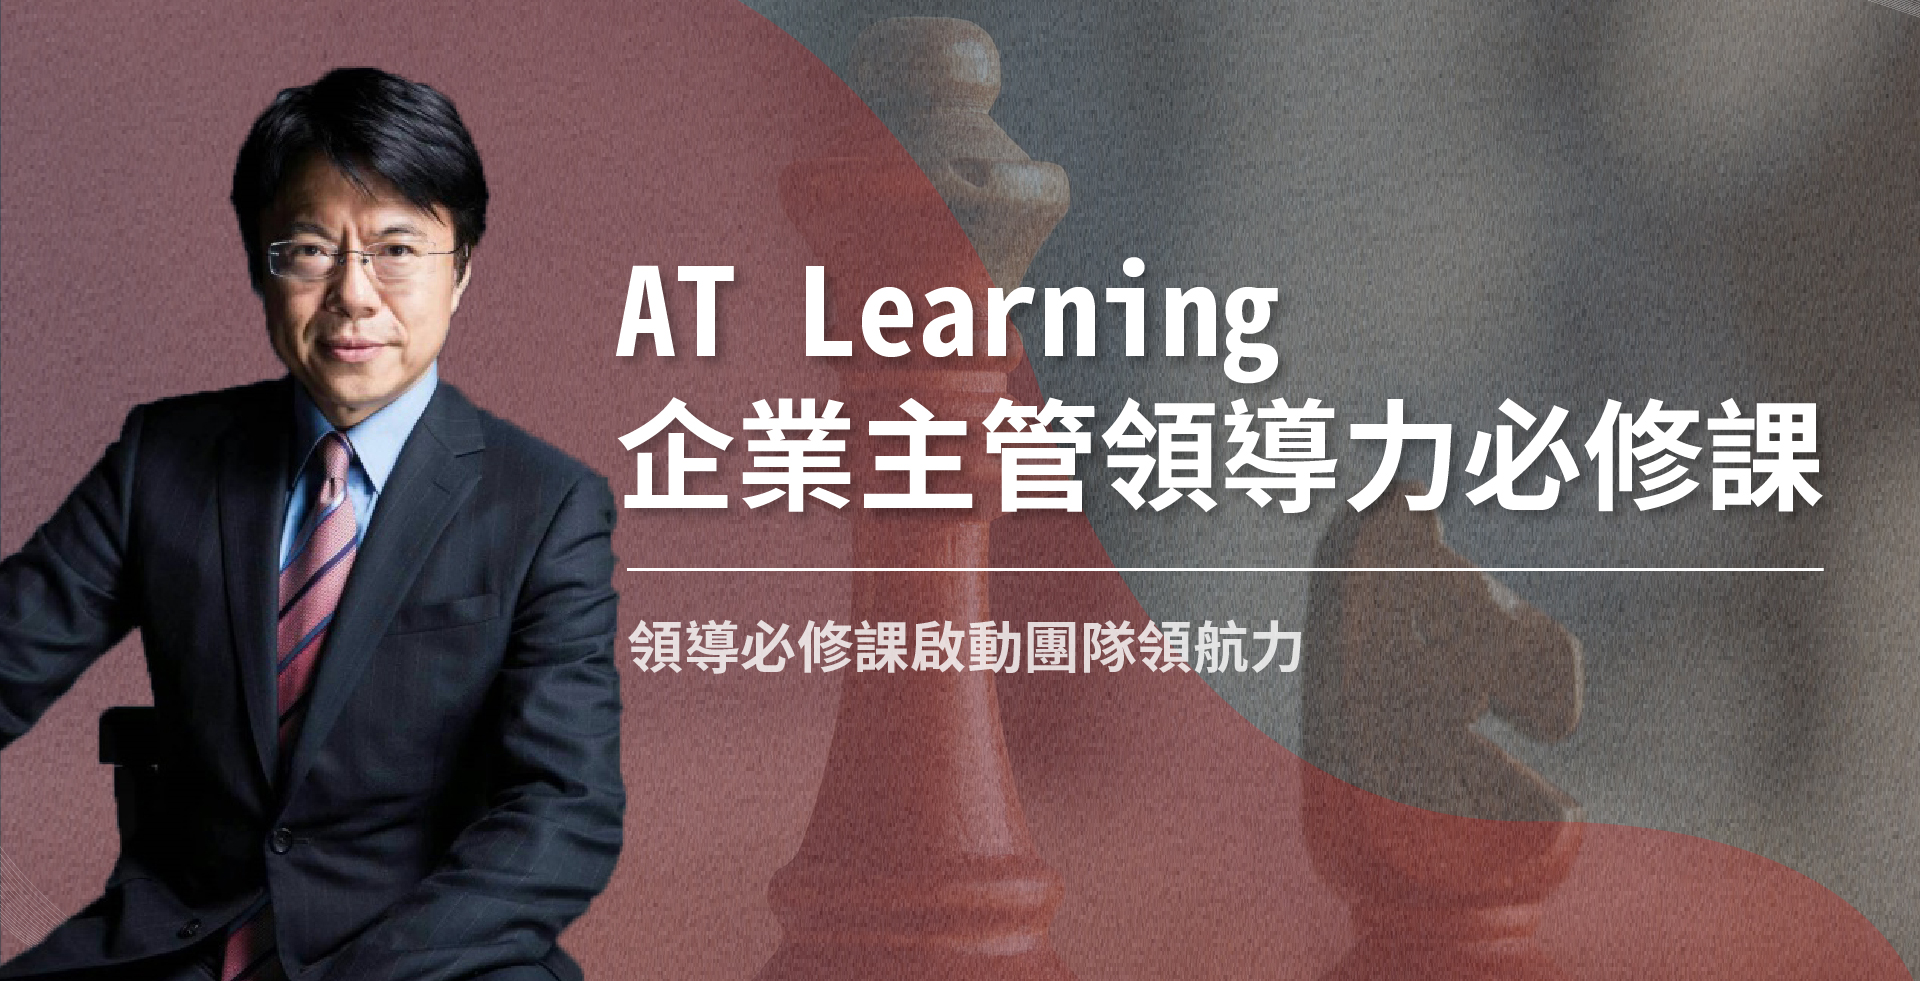 Read more about the article AT Learning企業主管領導力必修課